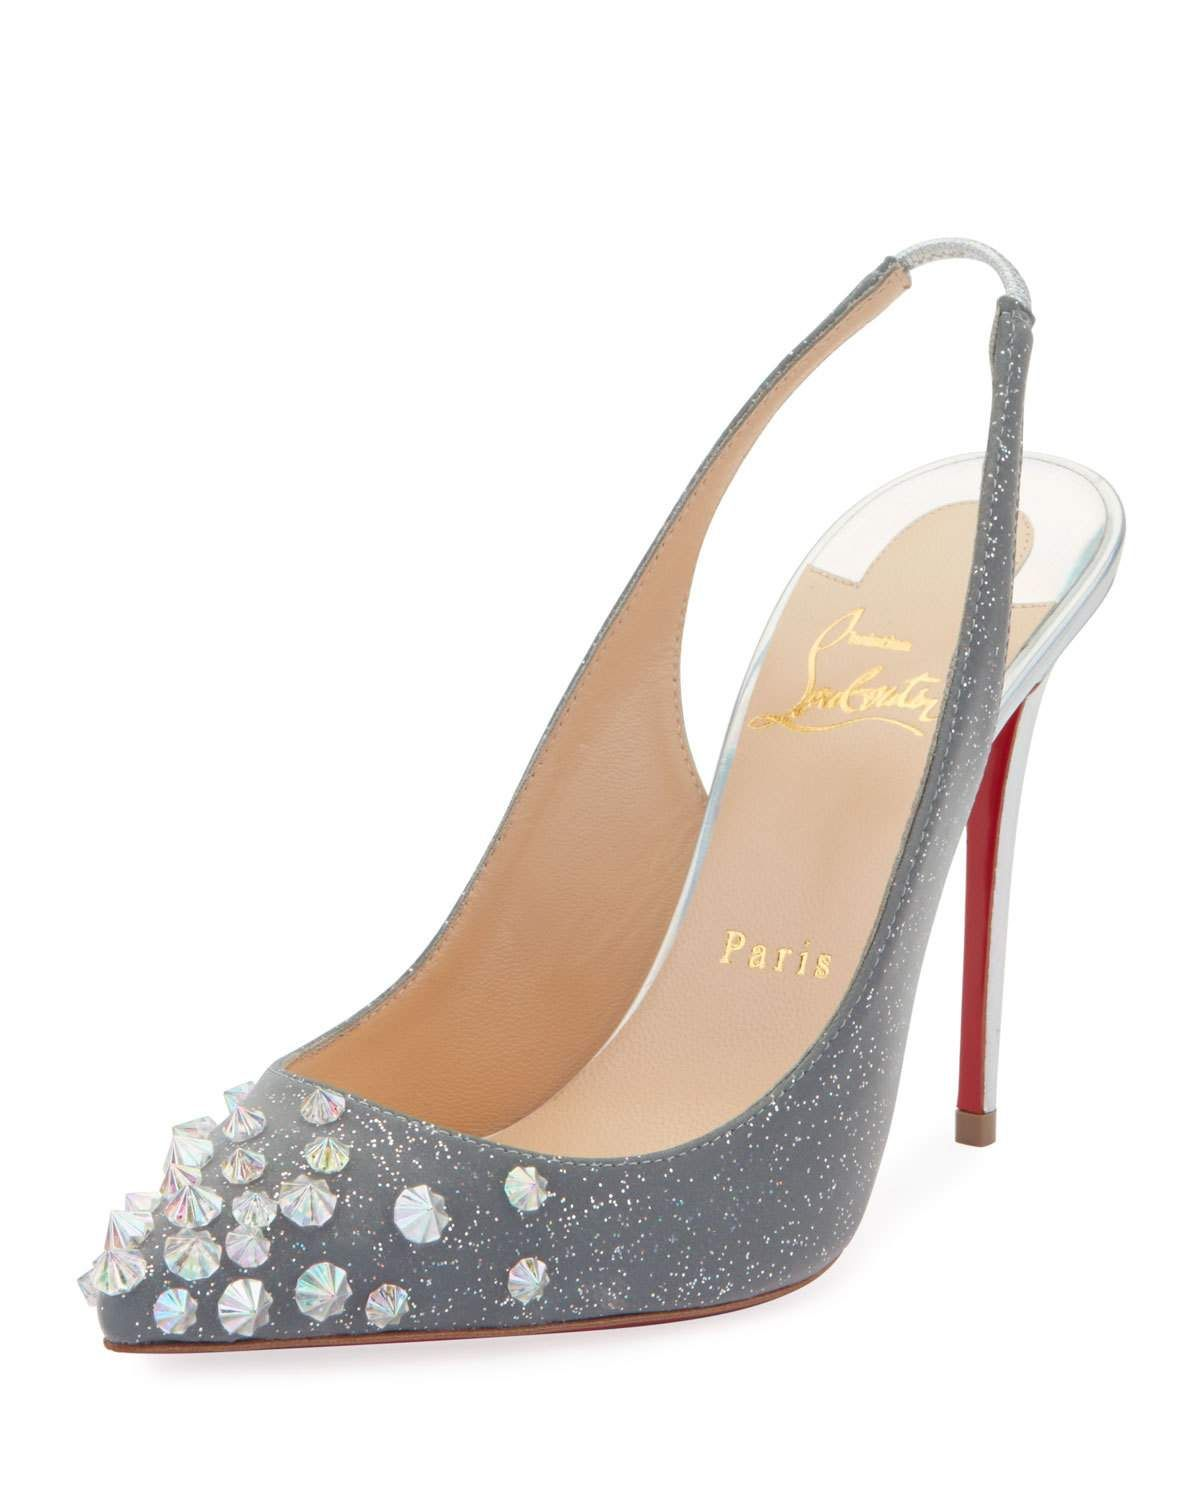 424e07c20cd 945 2019 Drama Sling 100mm Spike Specchio Laser Red Sole Pumps ...